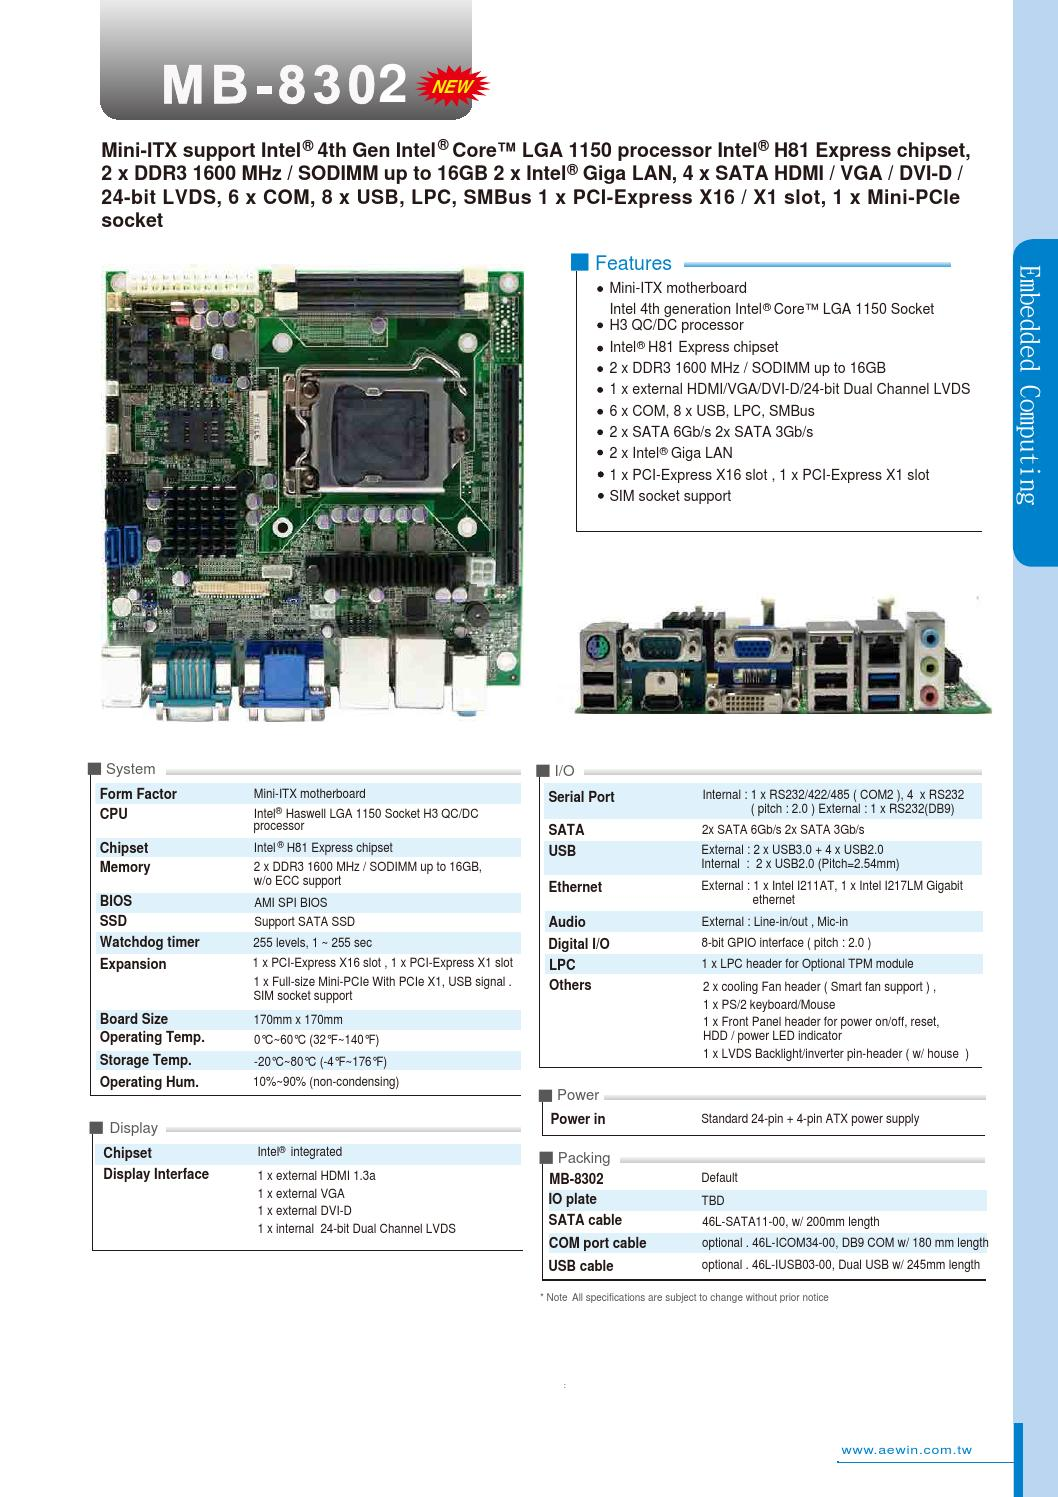 Mb8302 embedded motherboard by AEWIN Technologies Co , Ltd